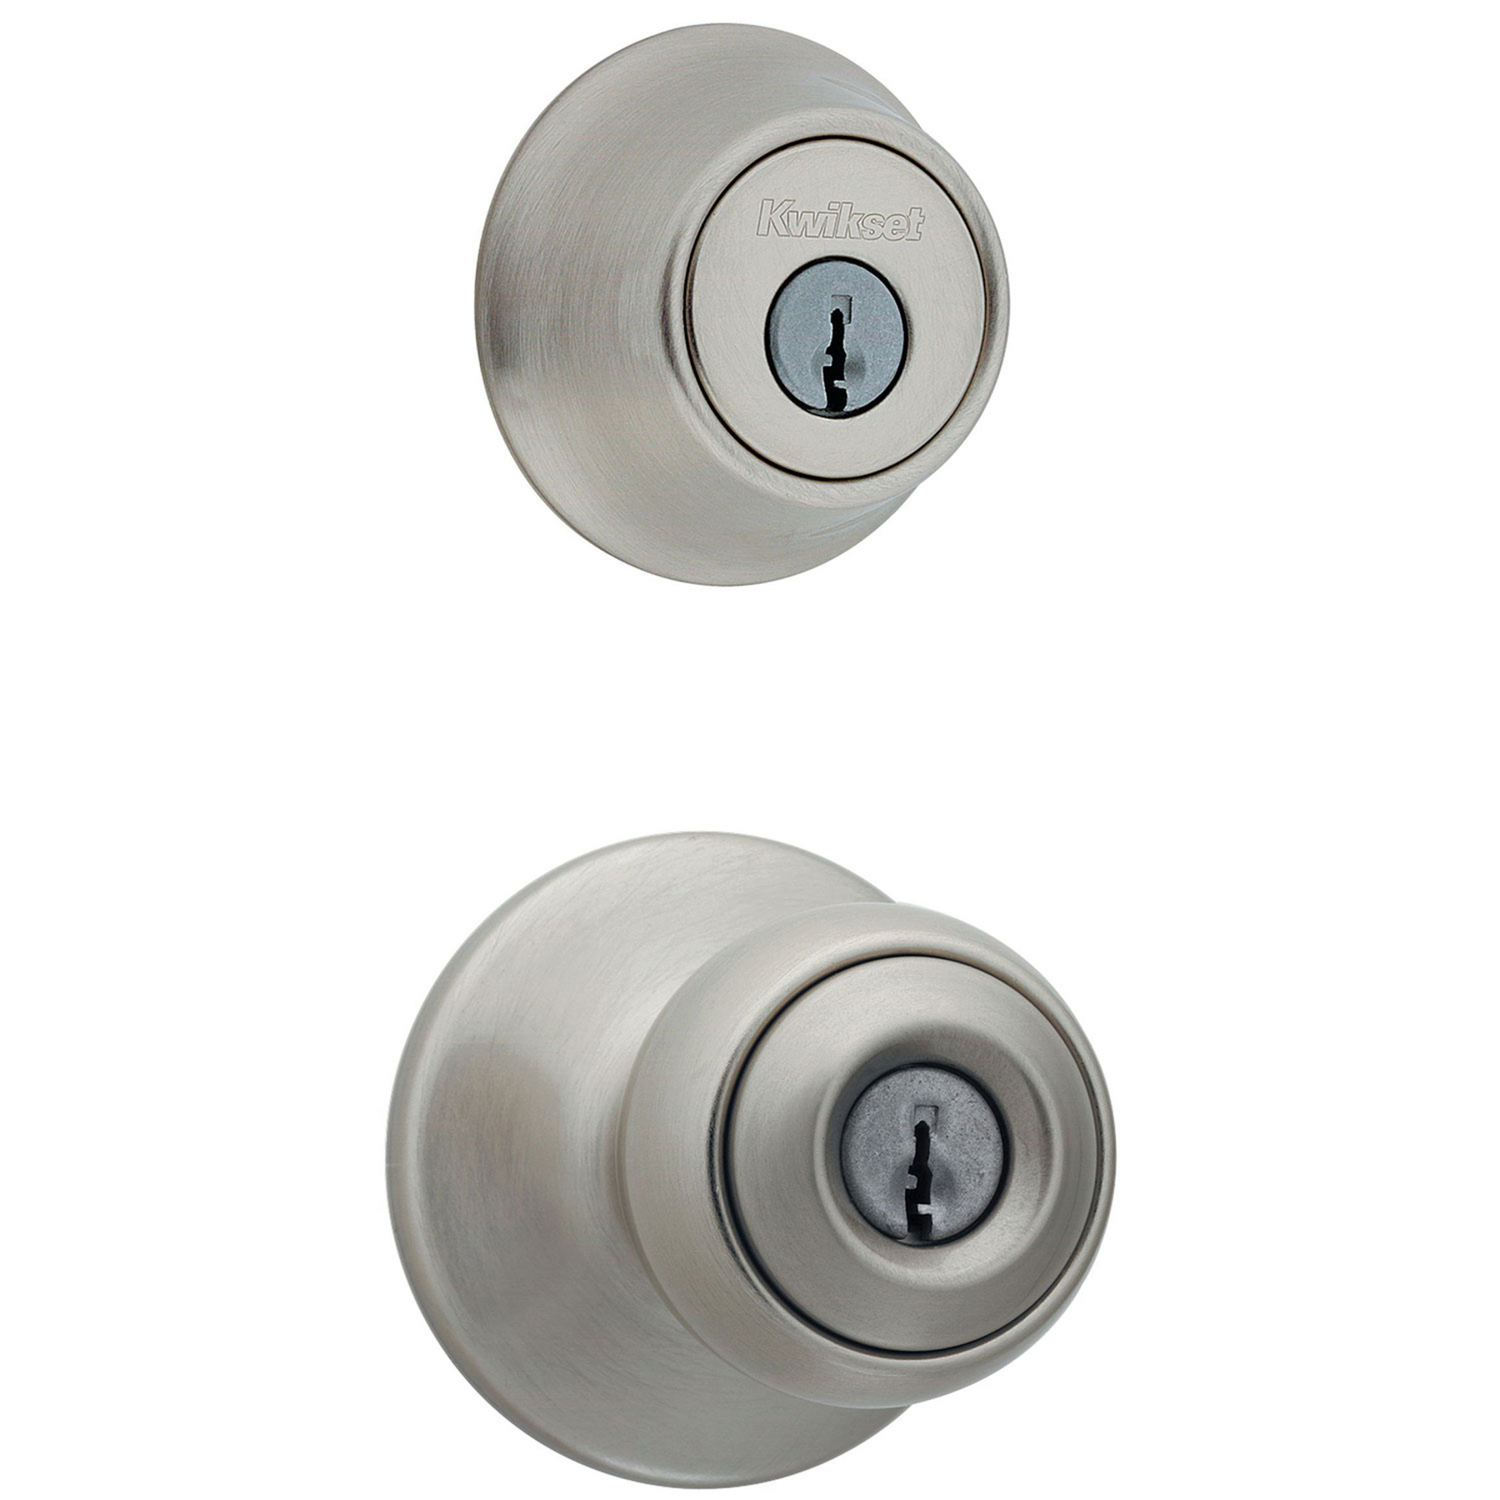 Kwikset  Polo  Satin Nickel  Steel  Entry Lockset  ANSI/BHMA Grade 3  1-3/4 in.